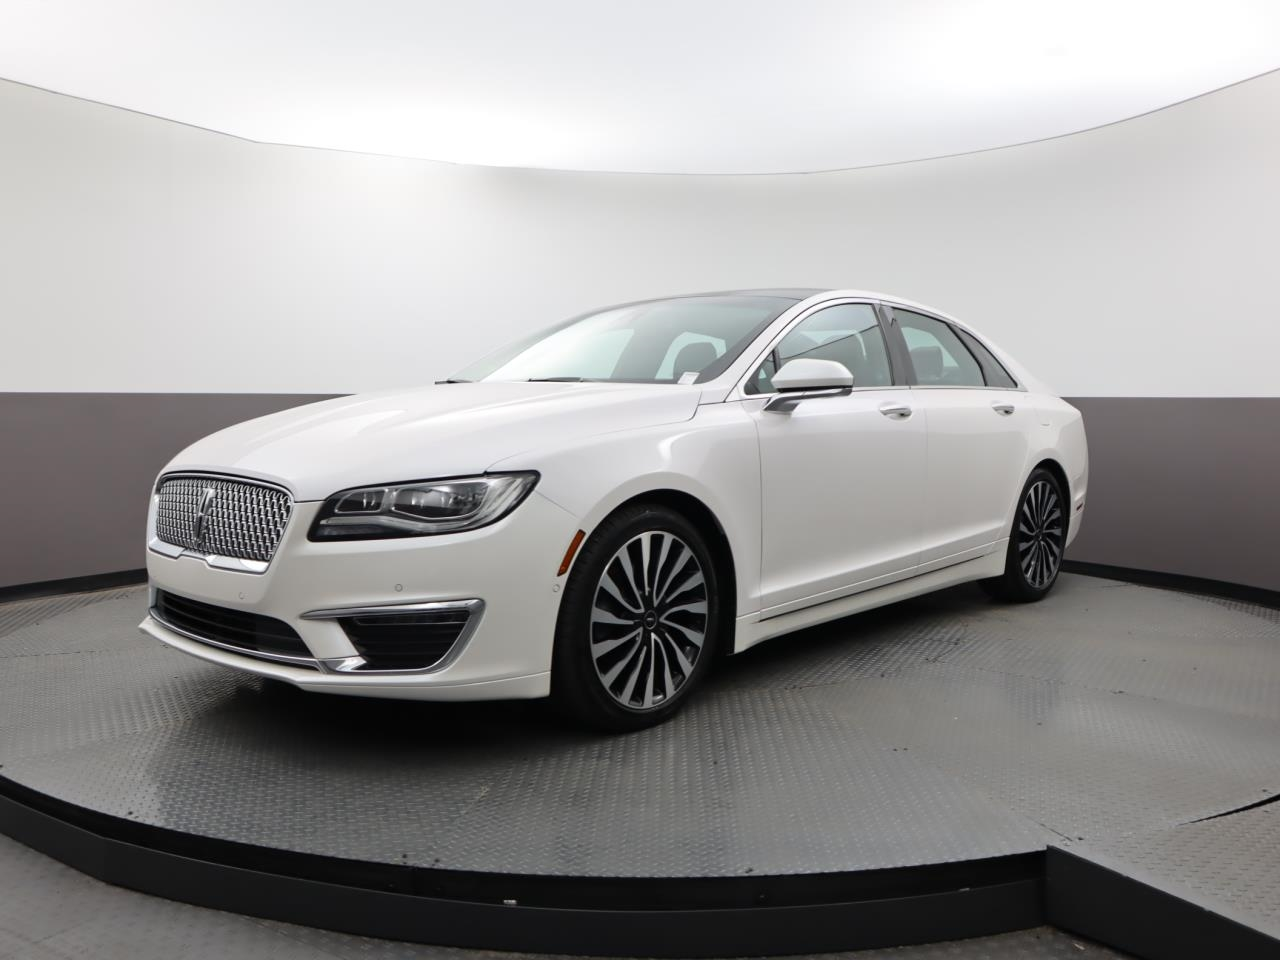 Used LINCOLN MKZ 2017 MARGATE BLACK LABEL